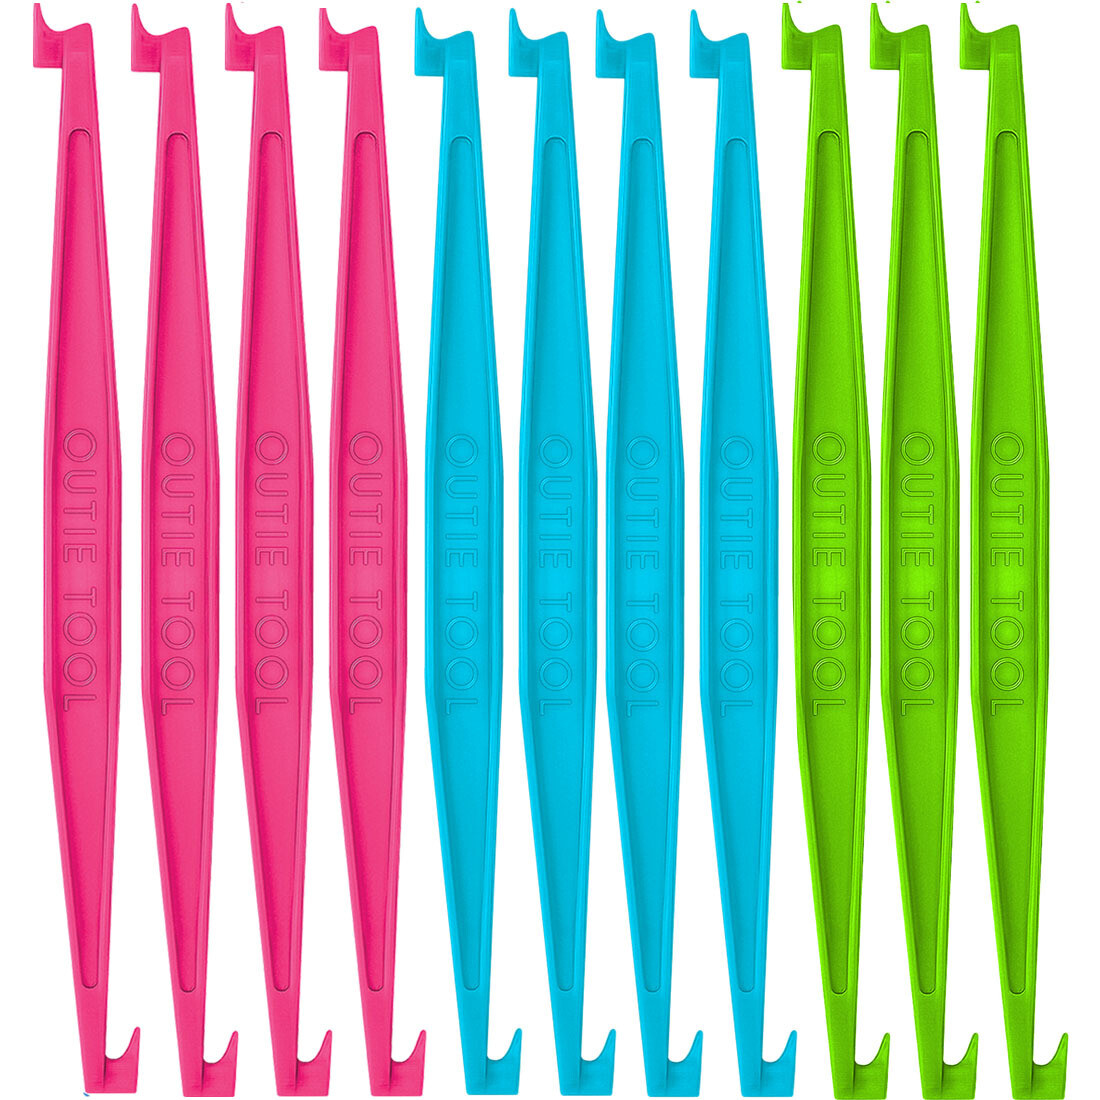 60 BULK UNPACKAGED OUTIE TOOLS - 20 Neon Green, 20 Hot Pink, 20 Pacific